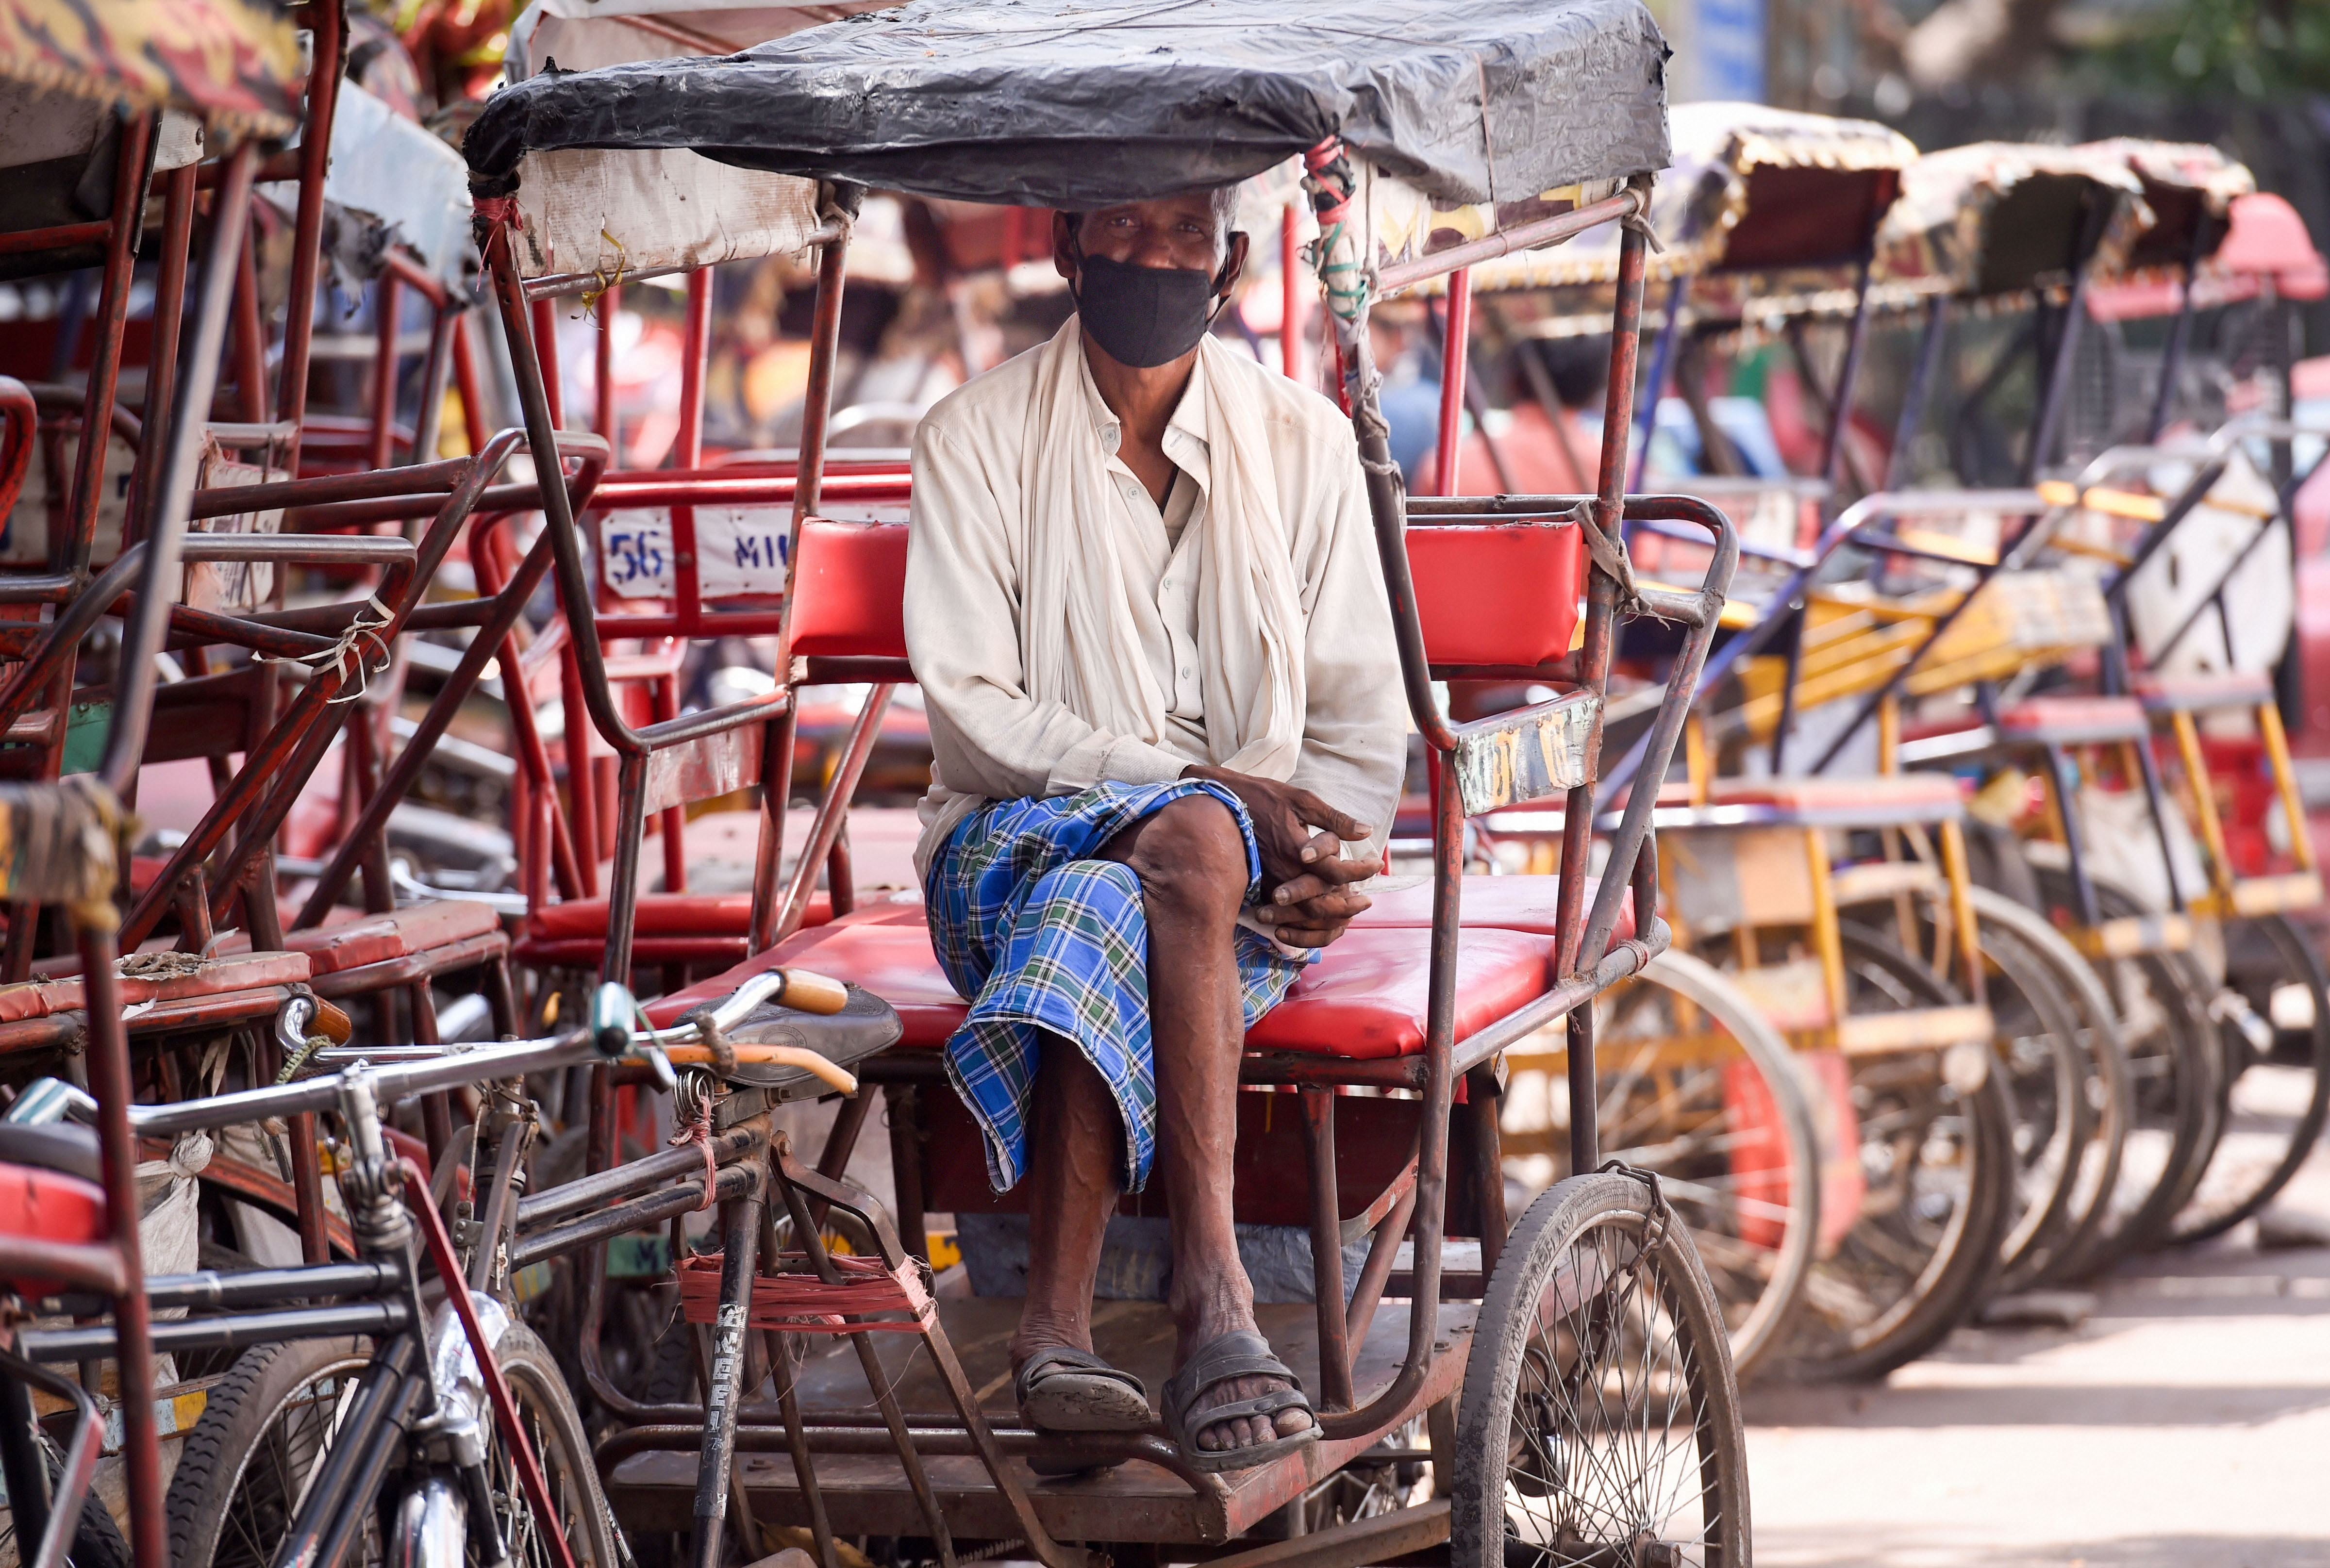 A rickshaw puller poses for the photographer during the nationwide lockdown to curb the spread of coronavirus, in Old Delhi, Friday, April 10, 2020. Delhis rickshaw pullers-- mostly migrants from Bihar and UP face a dire challenge with no work due to the ongoing lockdown.